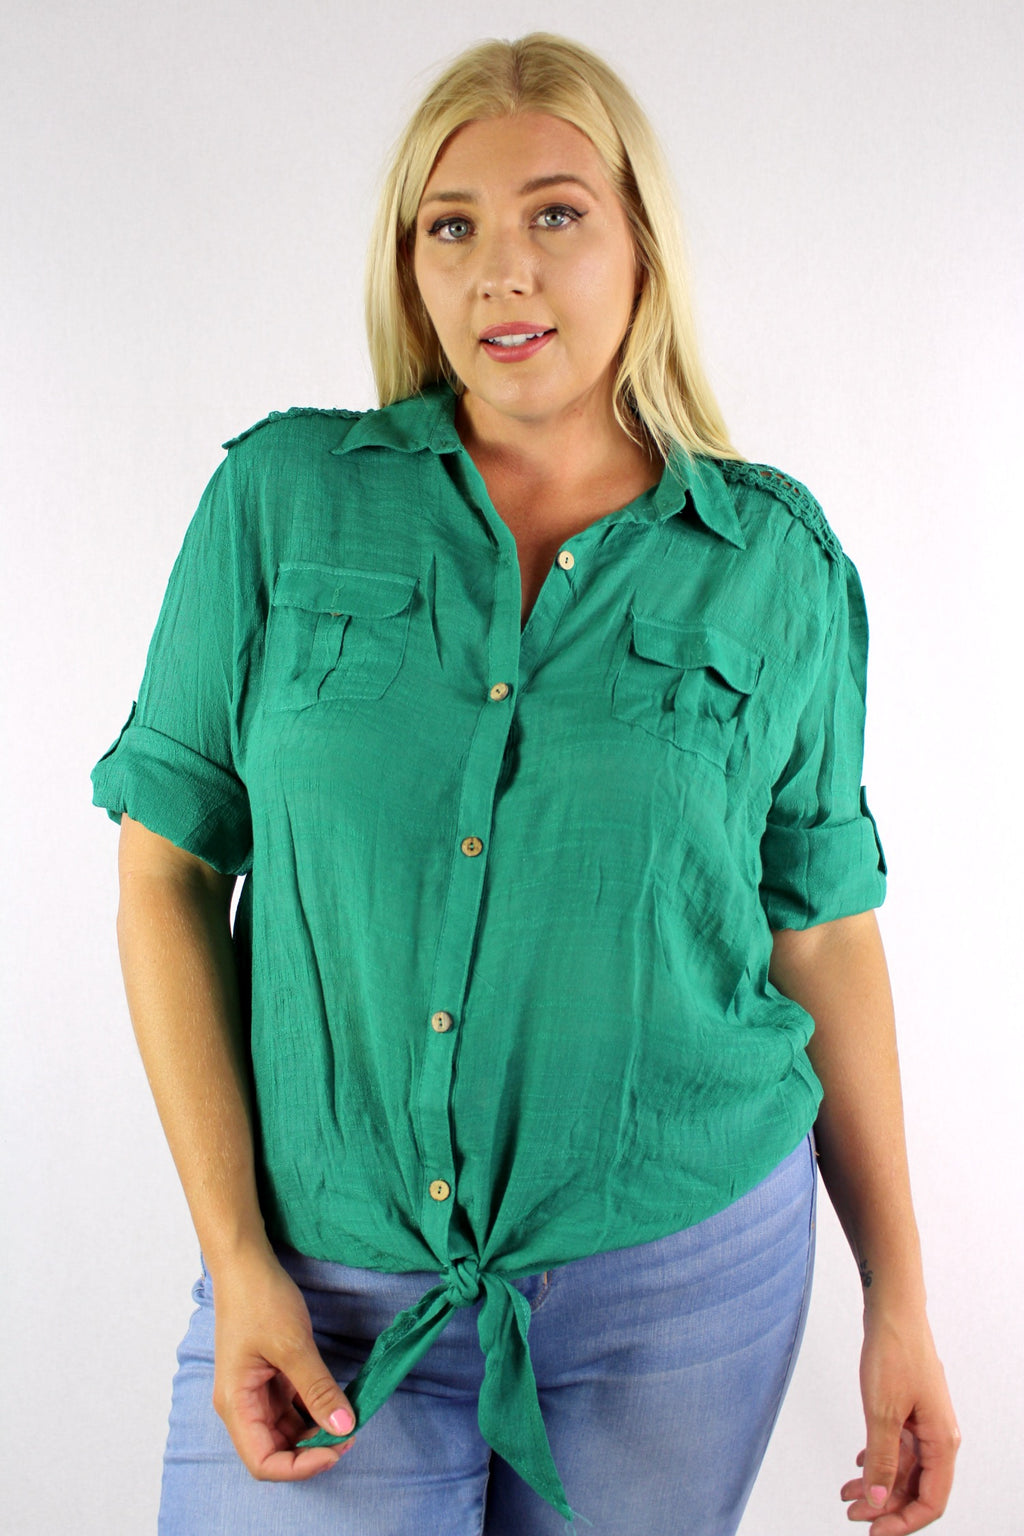 Women's Plus Size Button Down Top with Lace & Knot Details